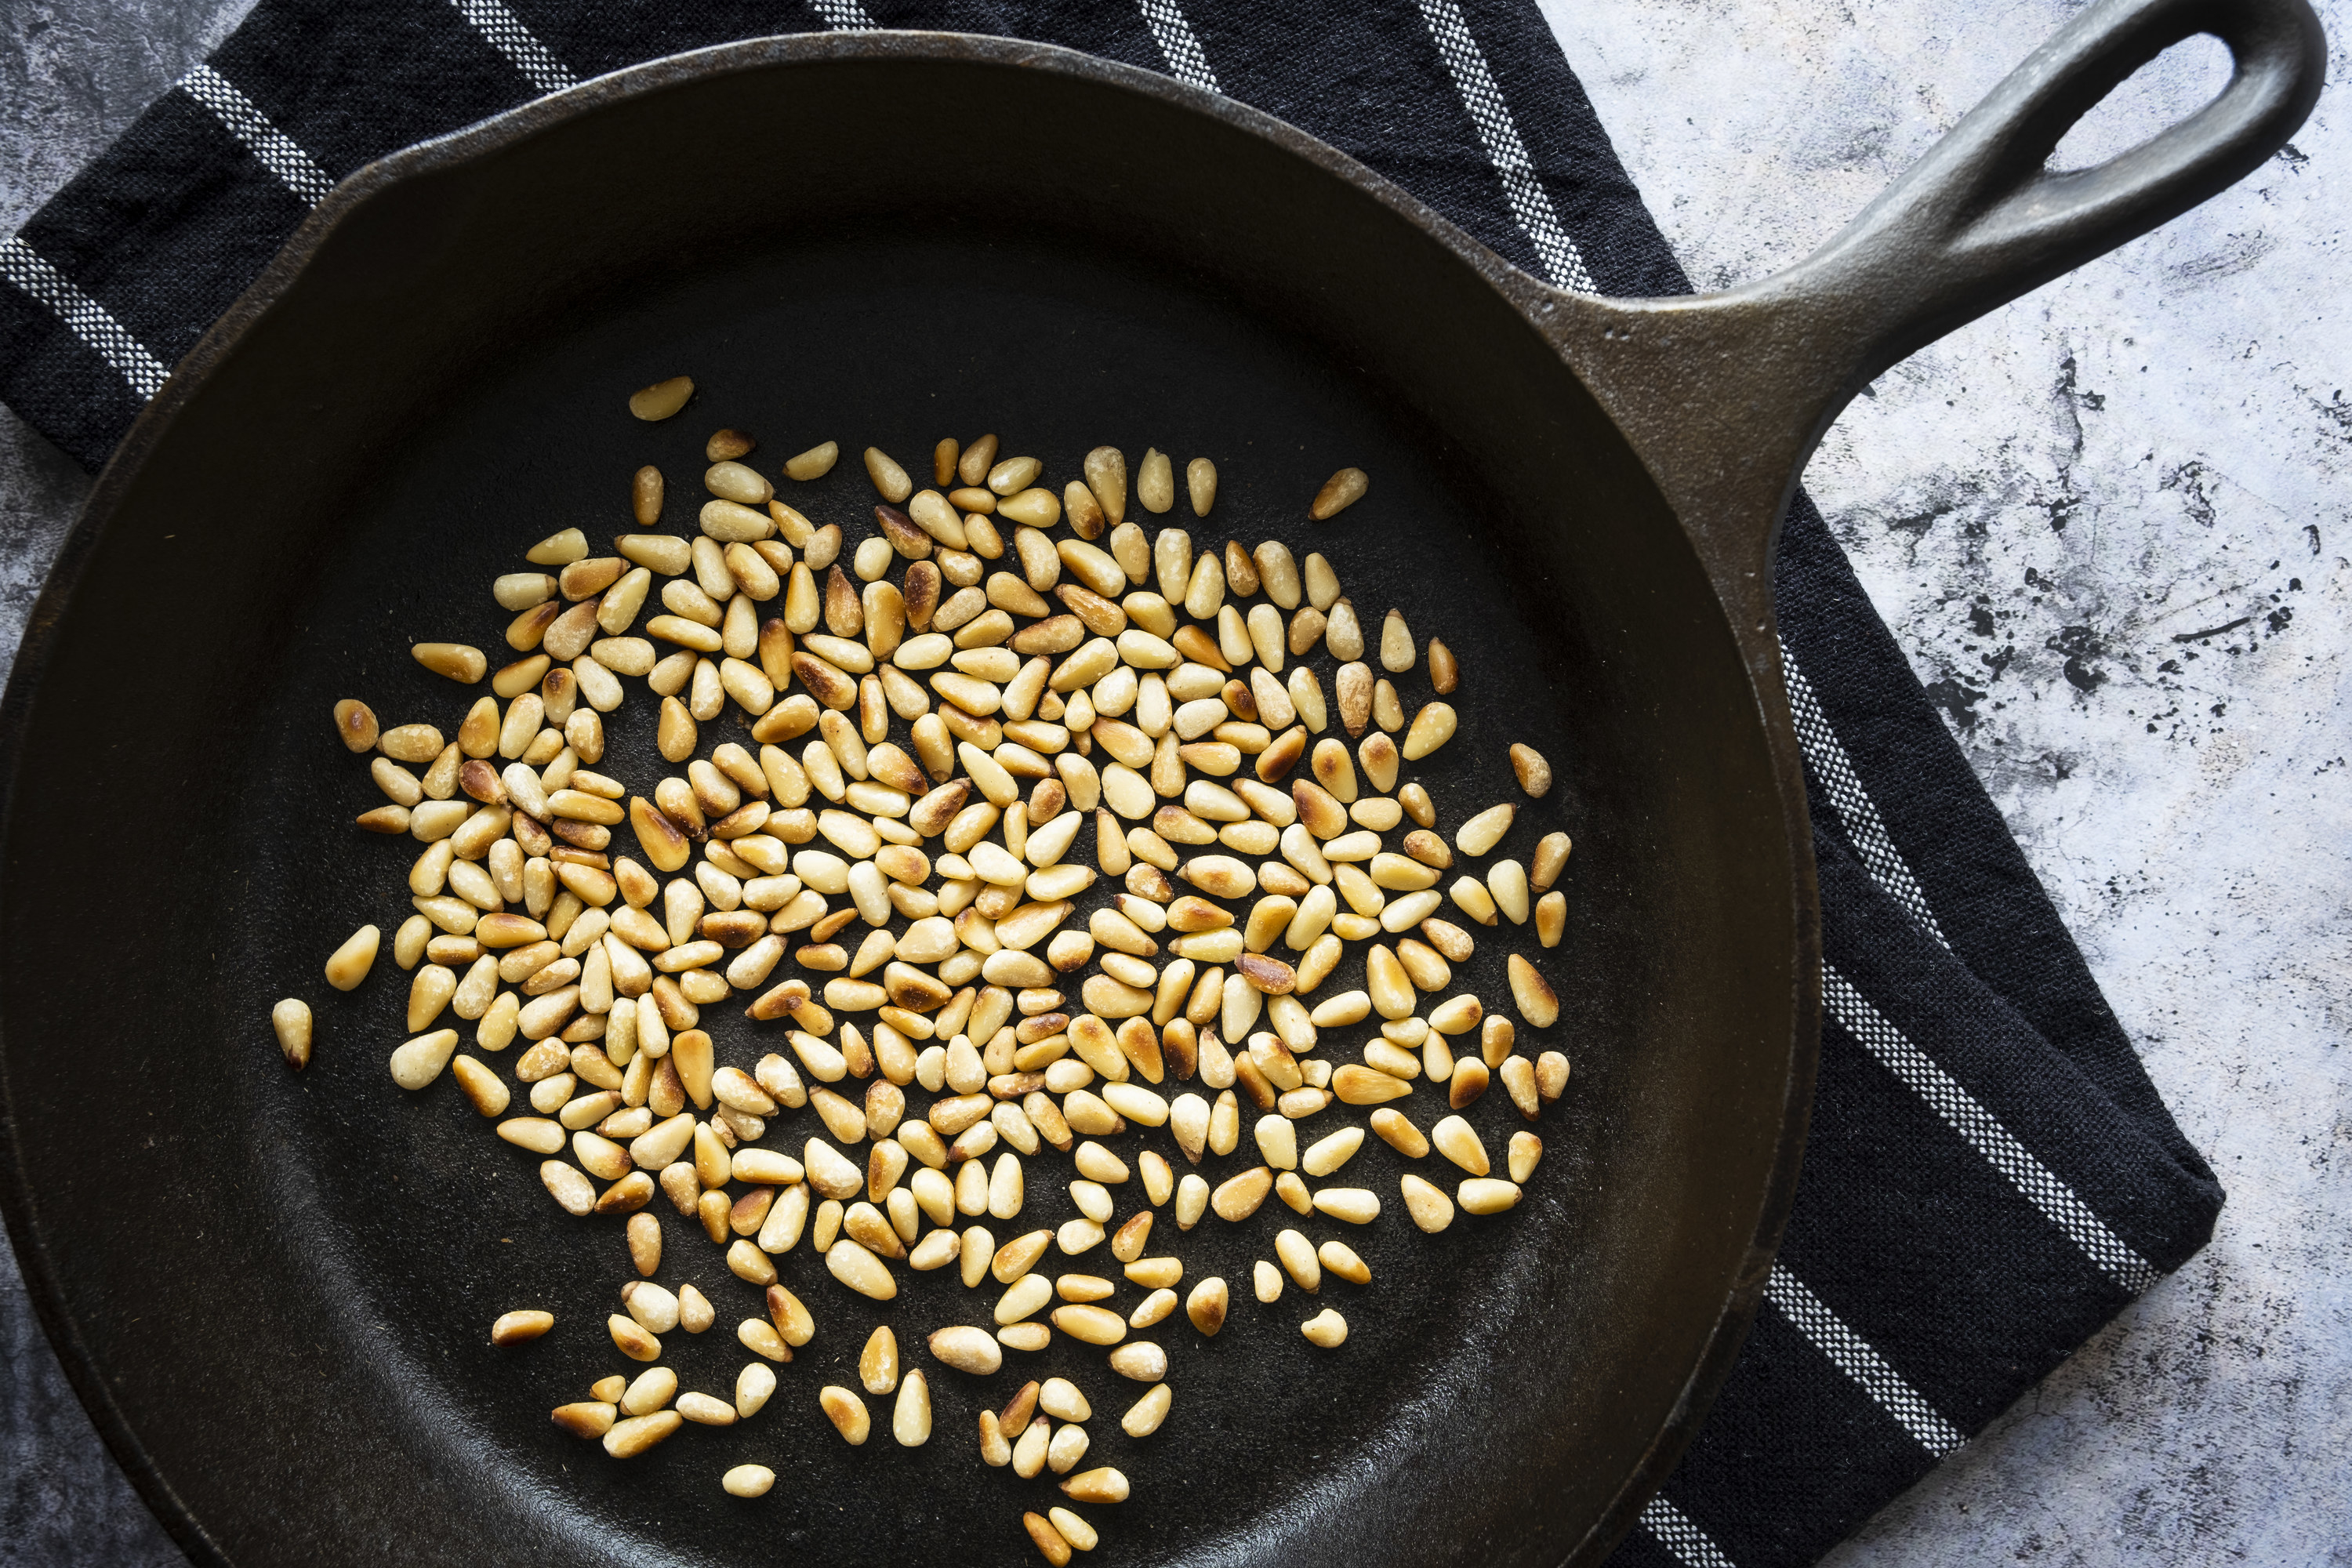 Toasted pine nuts in a cast iron skillet on a black tea towel.